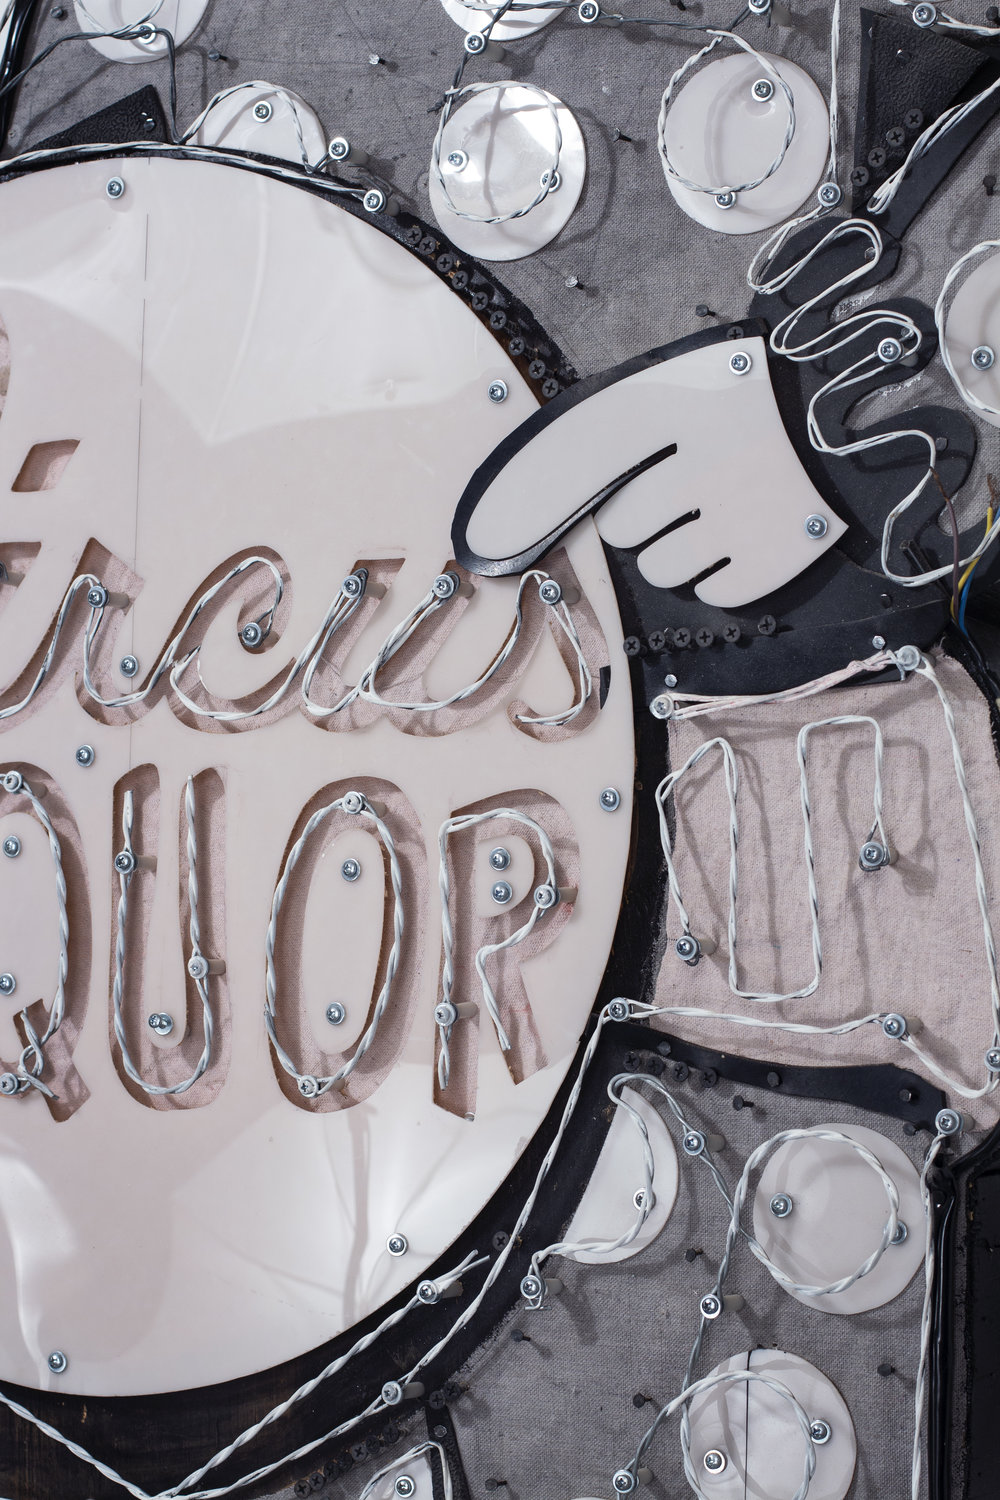 The Circus Liquor-Detail.jpg